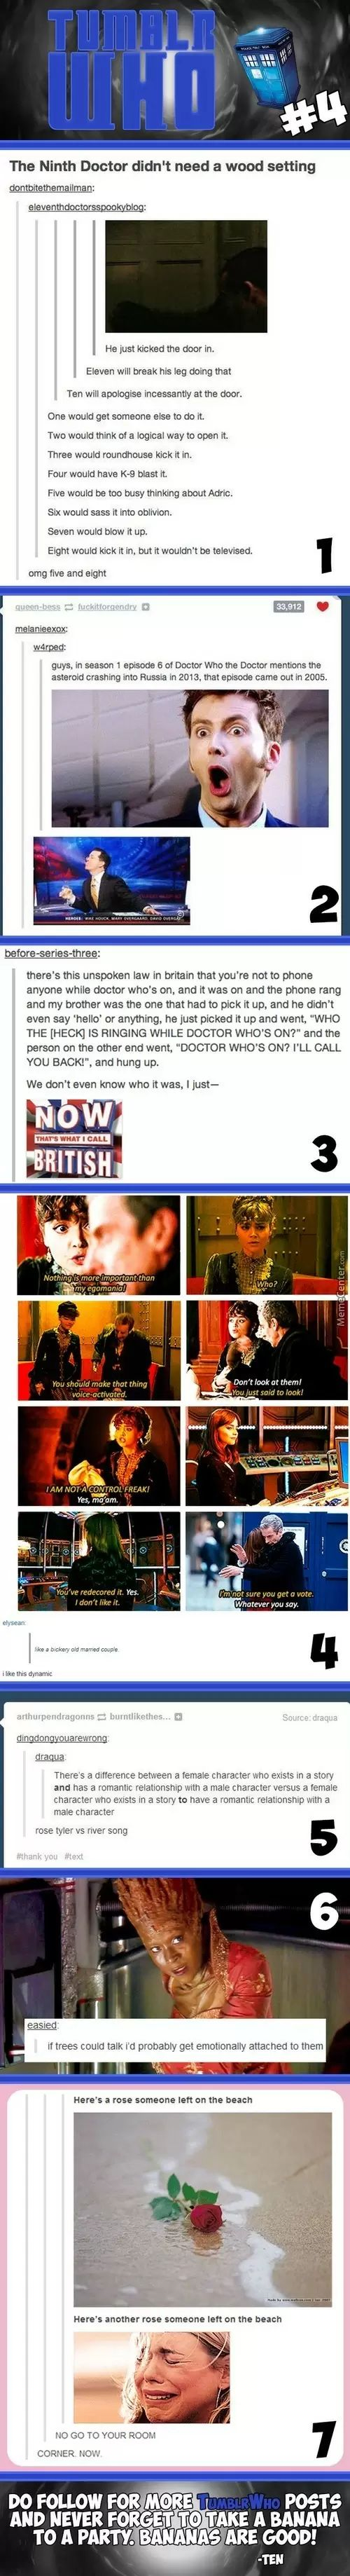 #5: Now which is which?? Because in my opinion, it's respective, but some would beg to differ that Rose is the one who exists TO have a romantic relationship with the Doctor. 6 of one, half dozen of the other...